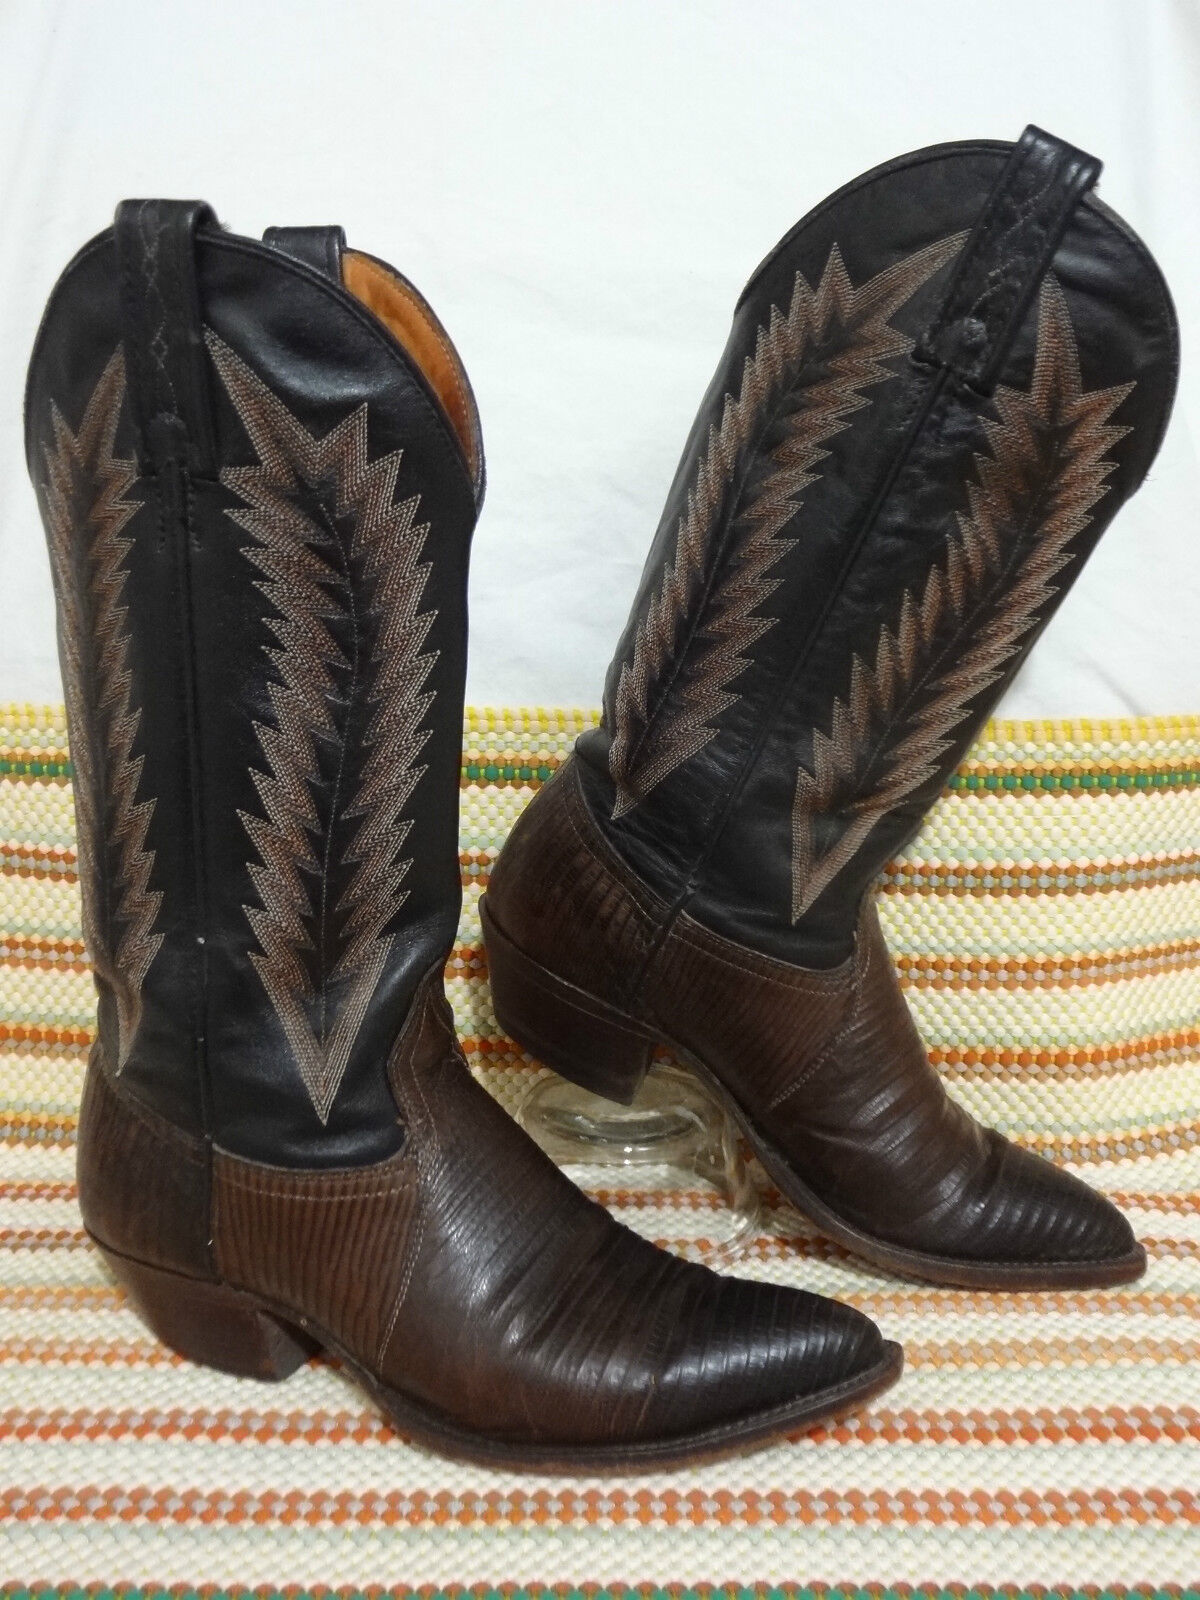 J CHISHOLM WOMEN Stiefel SZ 6 WESTERN M  BROWN  WESTERN 6 LEATHER GENUINE LIZARD EXOTIC 925cf9